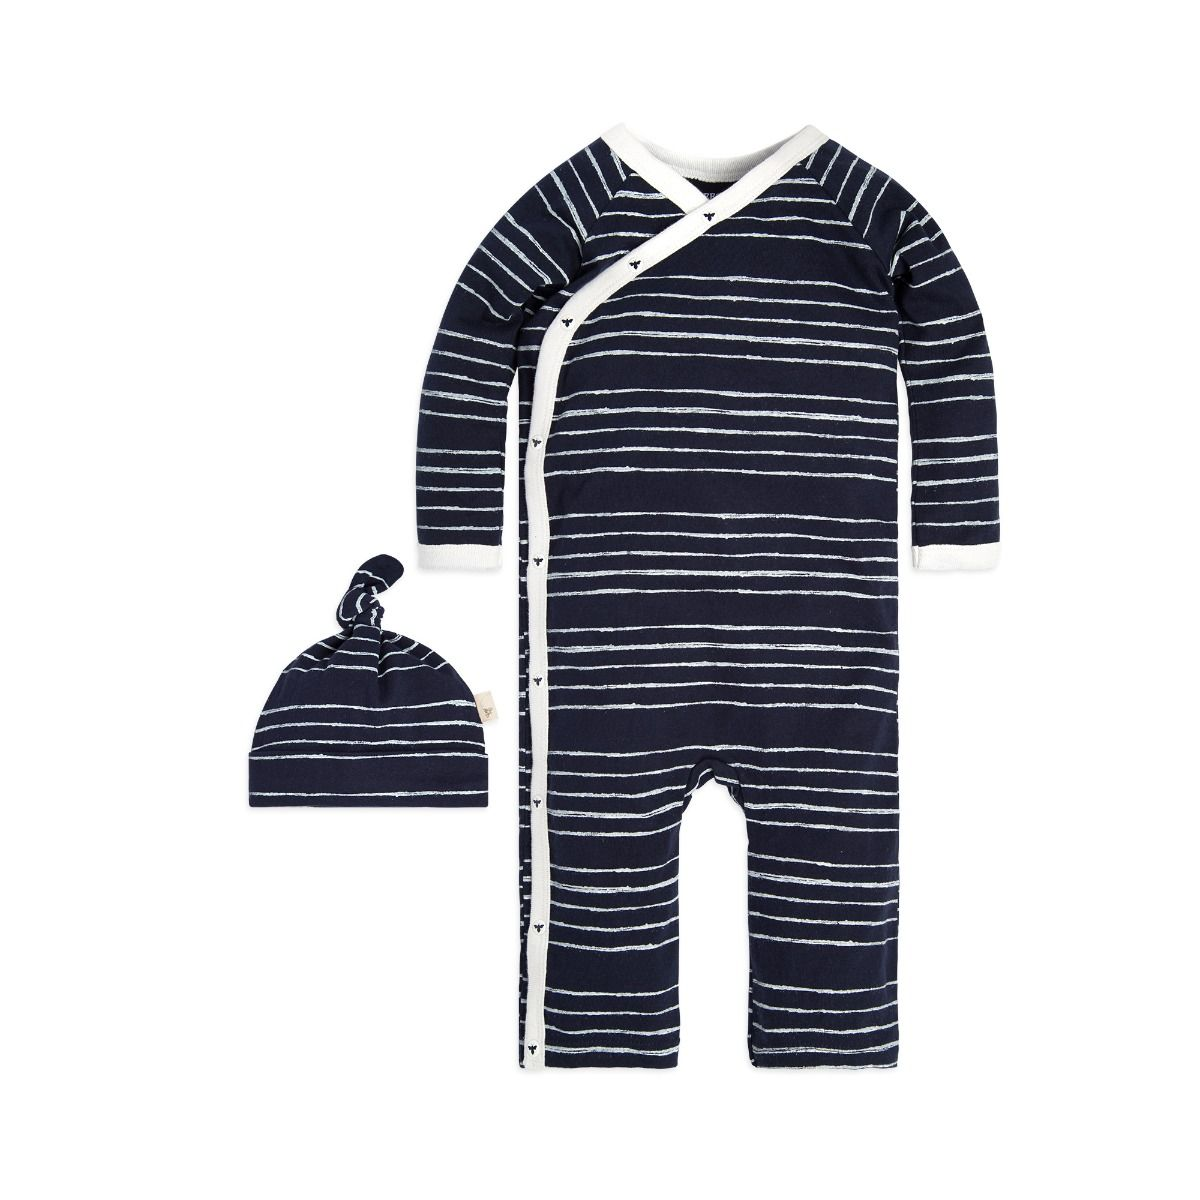 Lullaby Stripe Kimono Organic Baby Cotton One Piece Jumpsuit & Hat Set